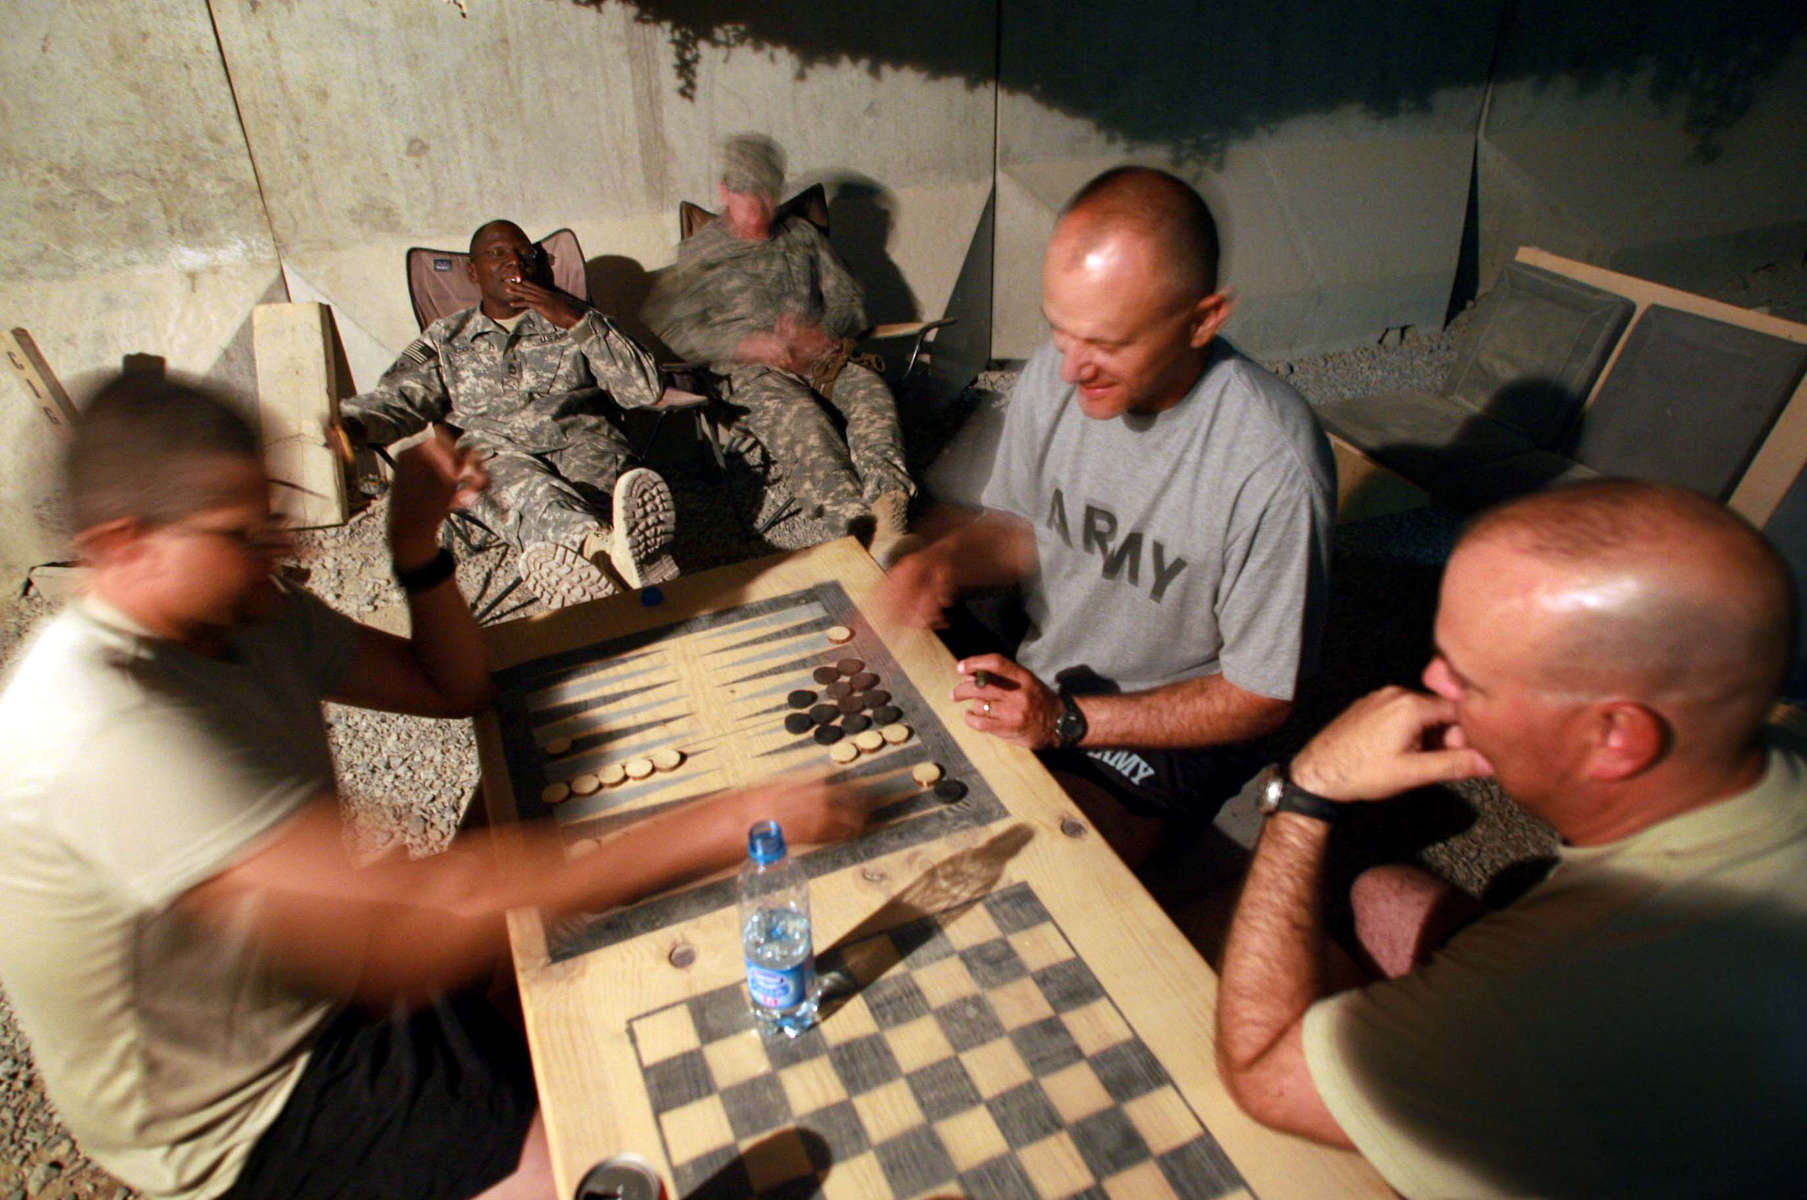 Afghanistan Five Years Later-Down Time-Members of the Missouri National Guard relax during some down time from their mission of training of the Afghan National Army in Kandahar.  The Americans fight side by side with Afghans but sleep and live on their own base seperate from the Afghans.